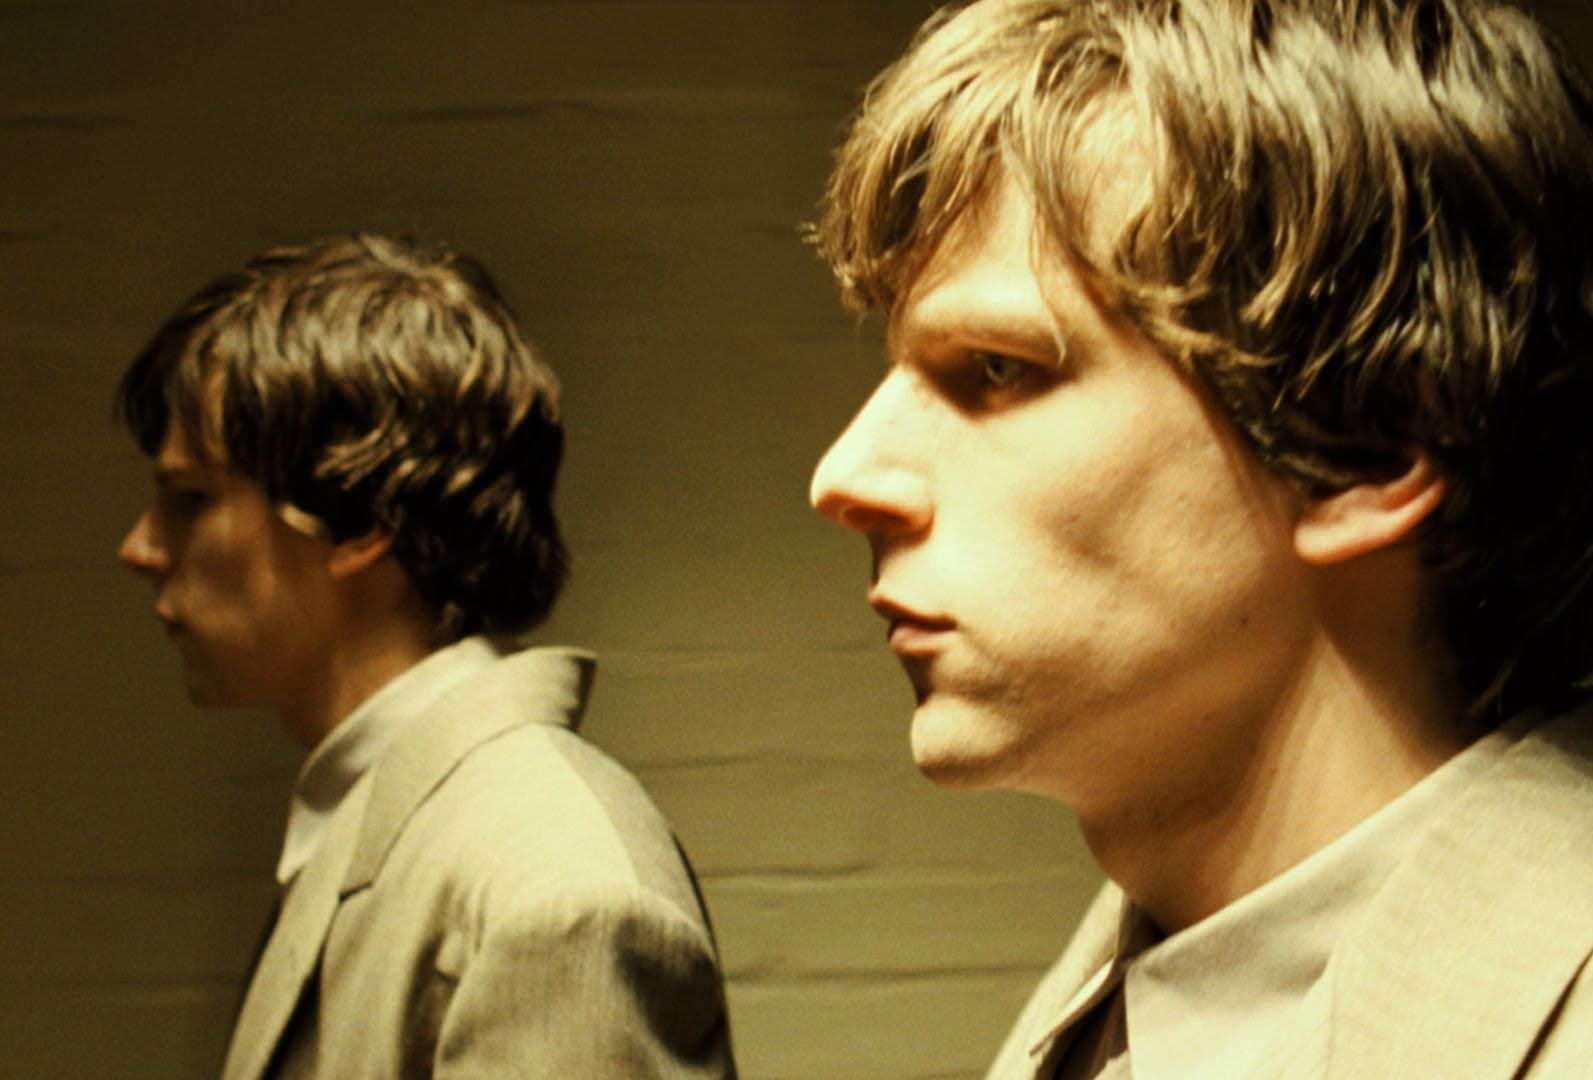 Jesse Eisenberg driven insane by his double